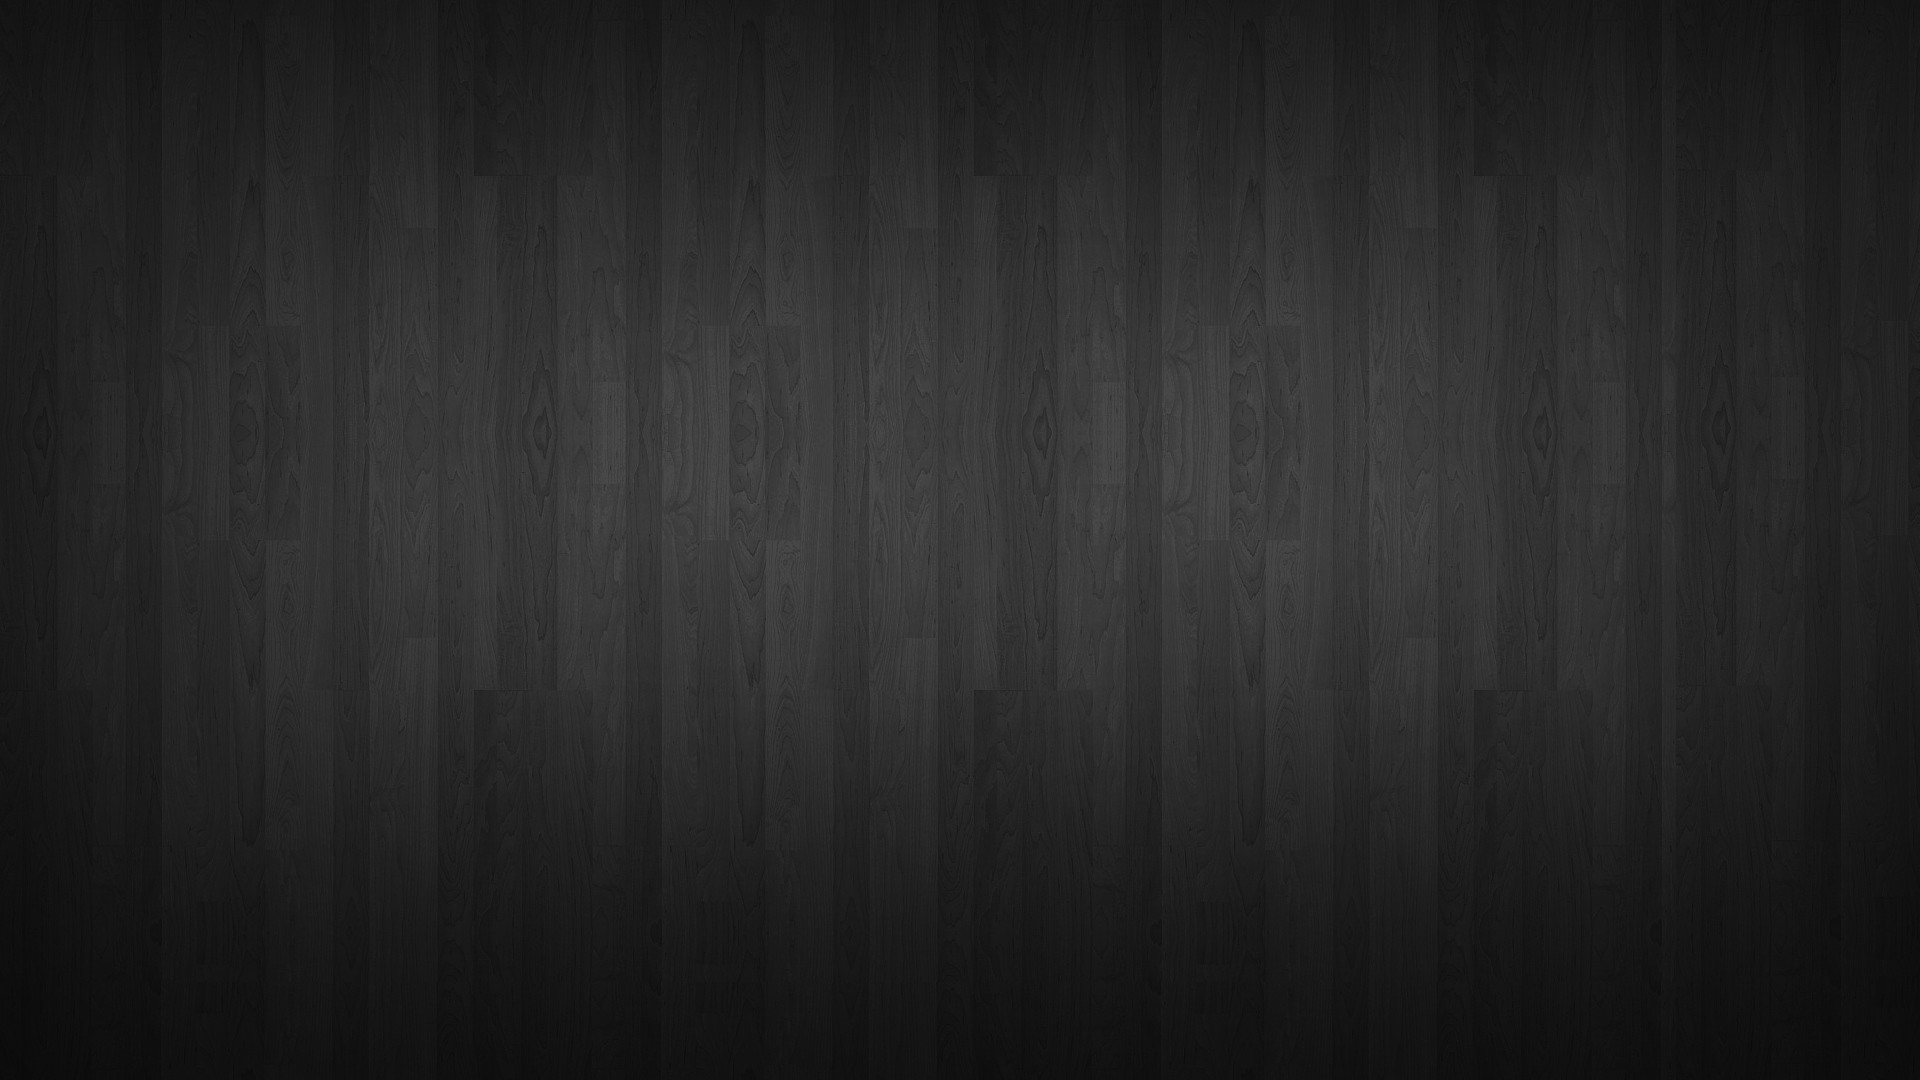 background, black white, wooden